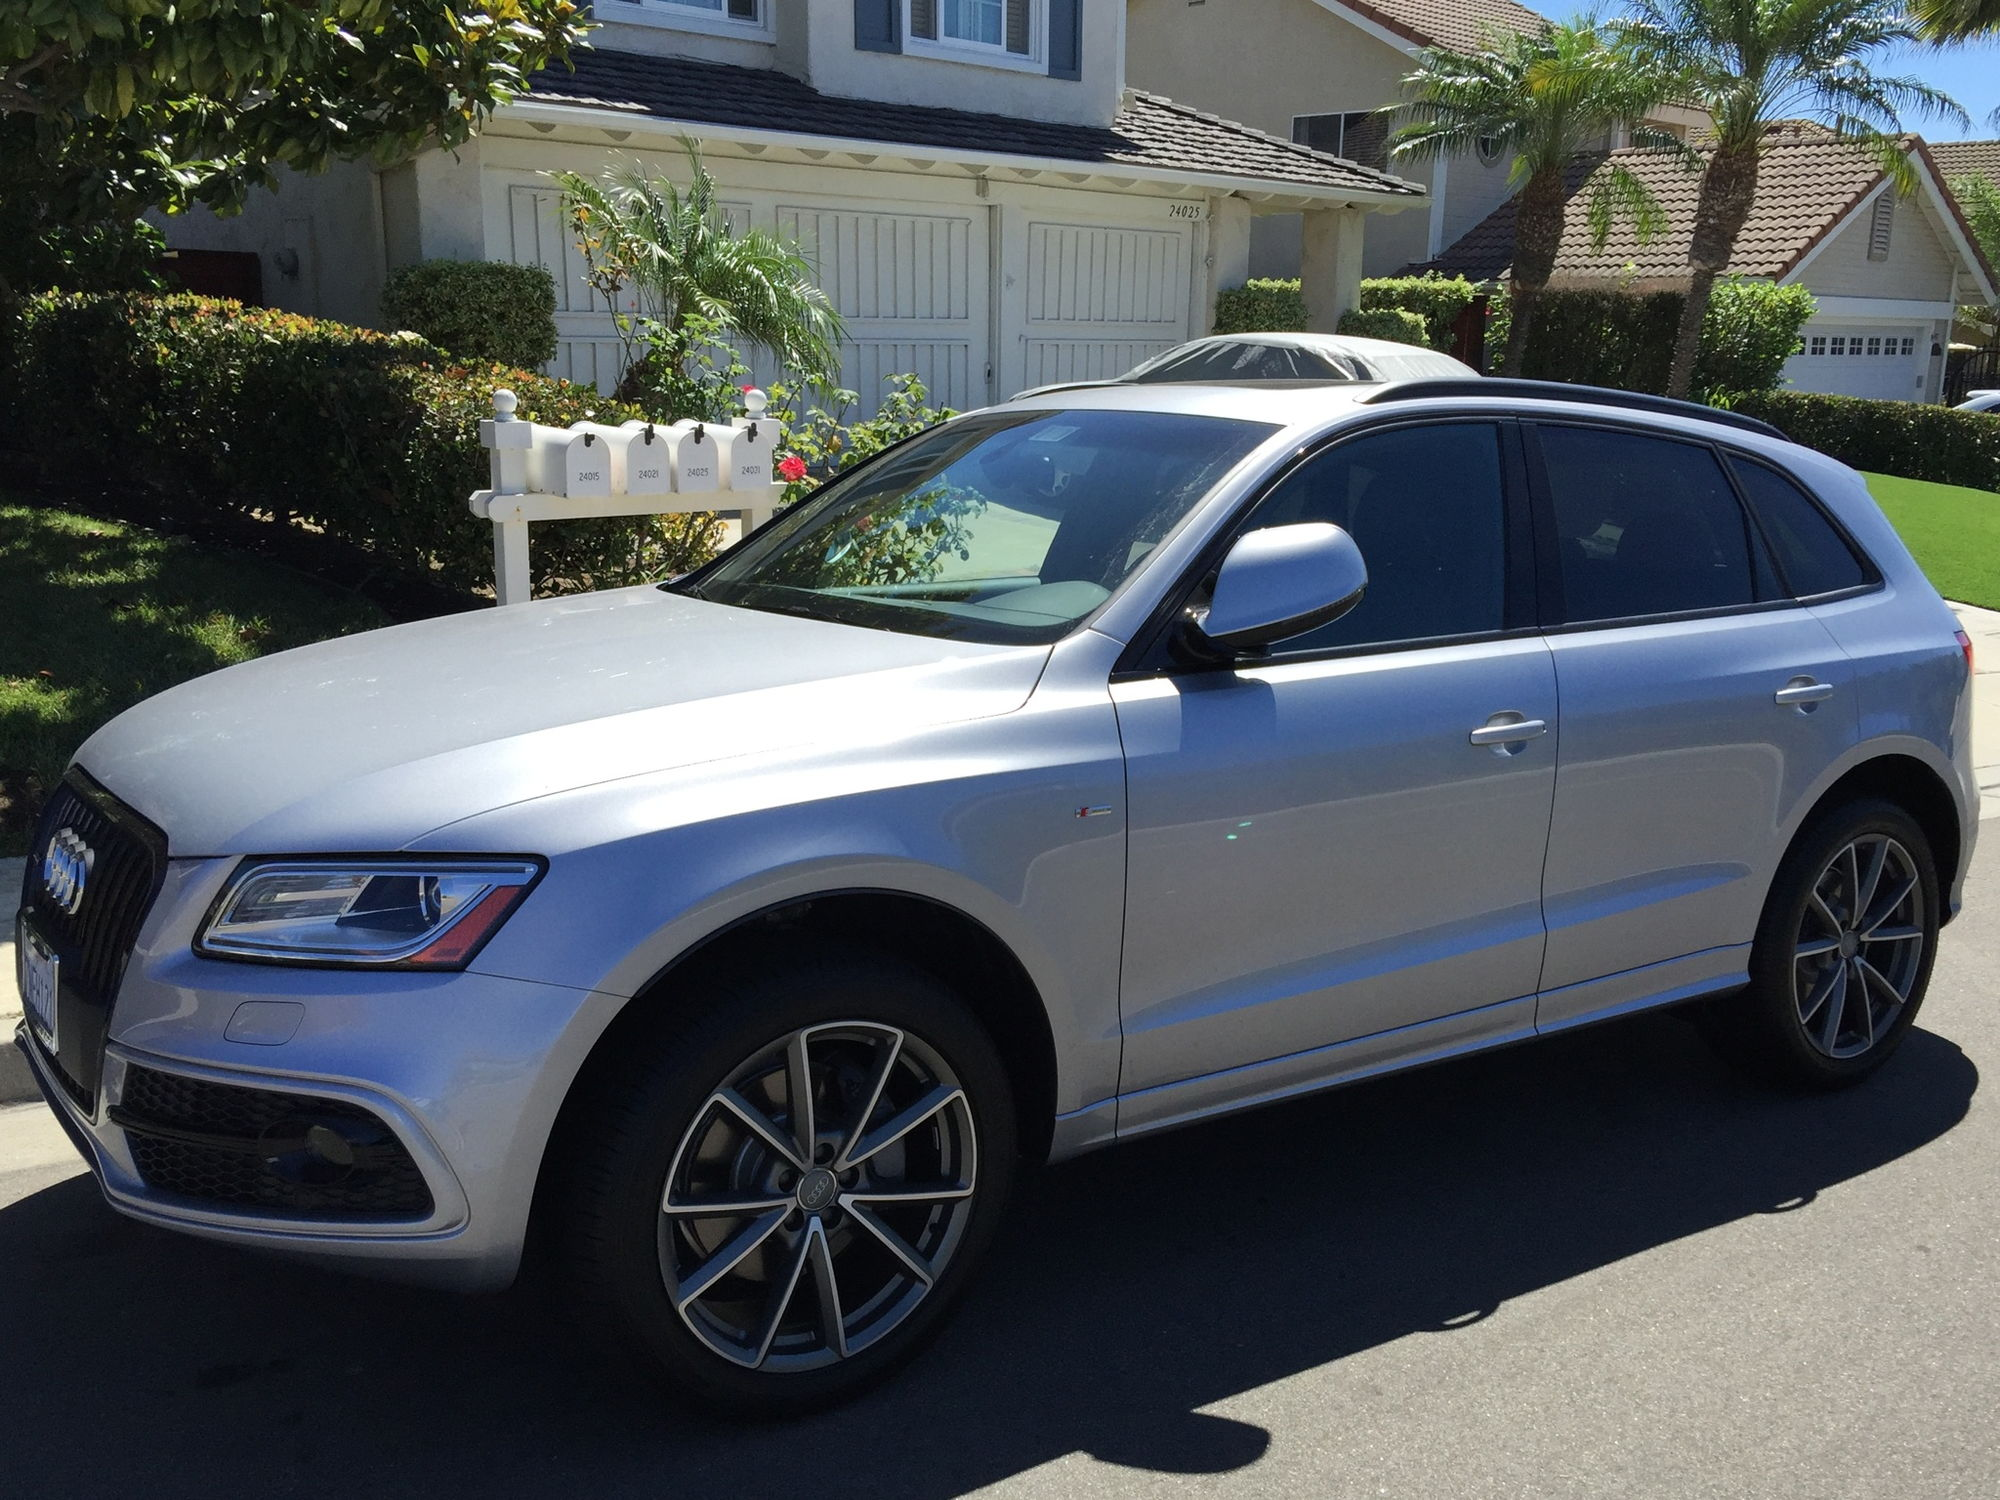 2016 audi q5 3 0t in florett silver w black optics package audiworld forums. Black Bedroom Furniture Sets. Home Design Ideas